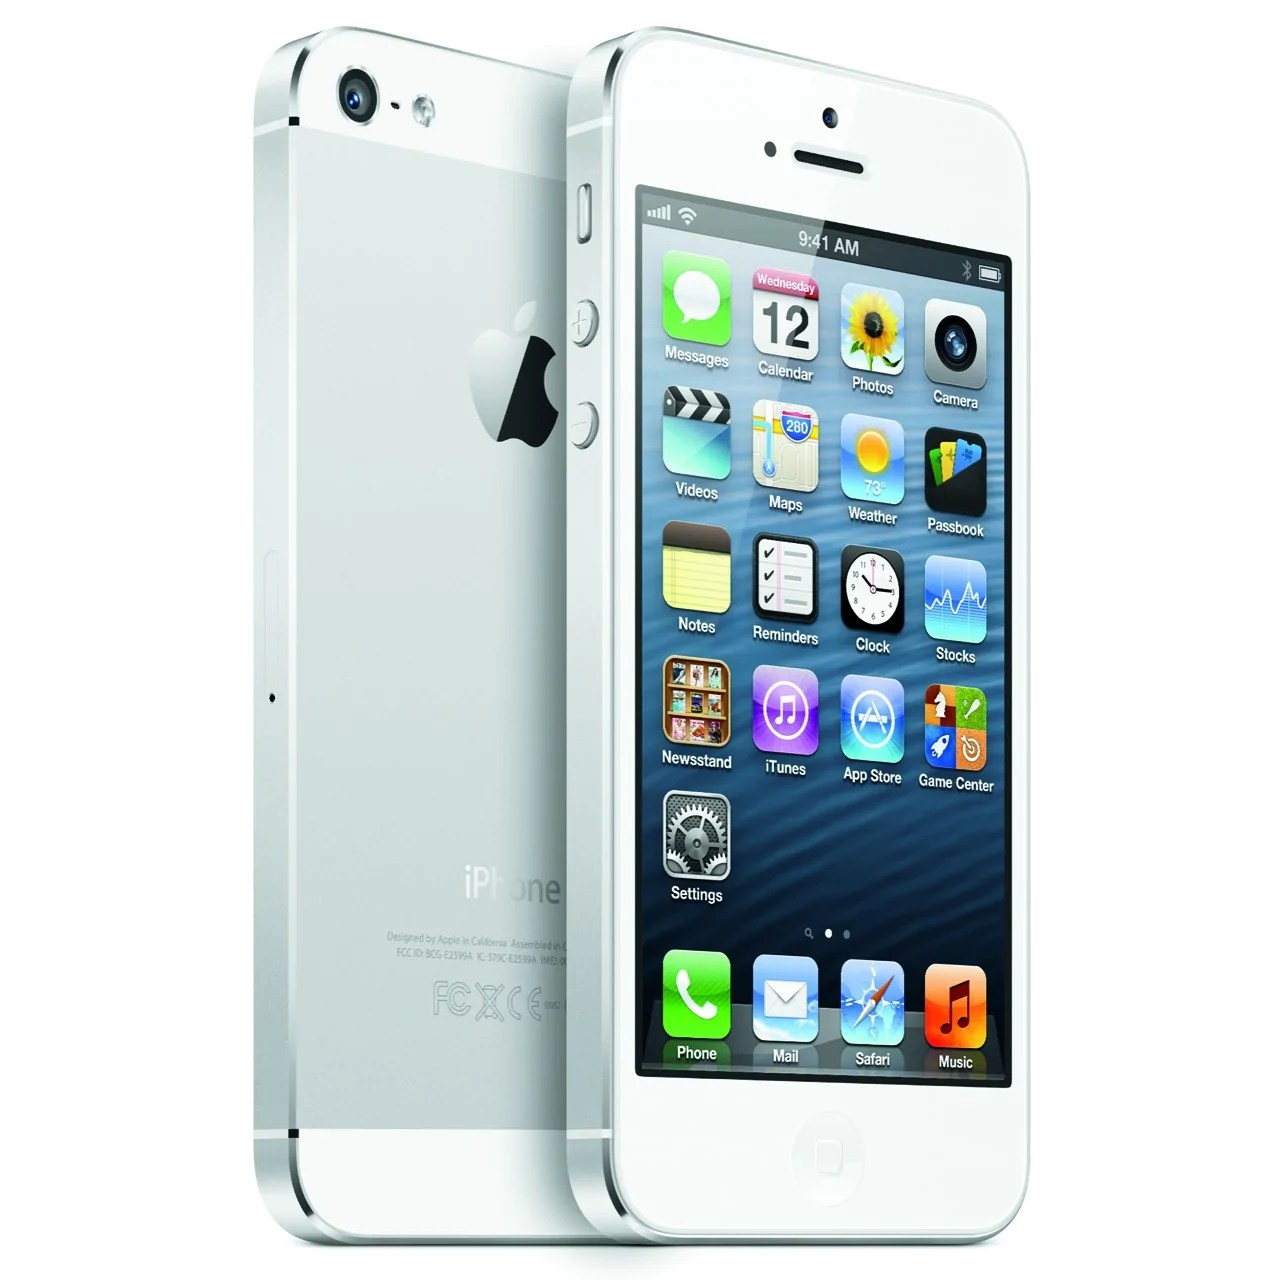 Iphone Se 16go Reconditionné Reconditioned By Seller Apple Iphone 5s Me306lla 16gb White Silver At T Warranty 90 Days